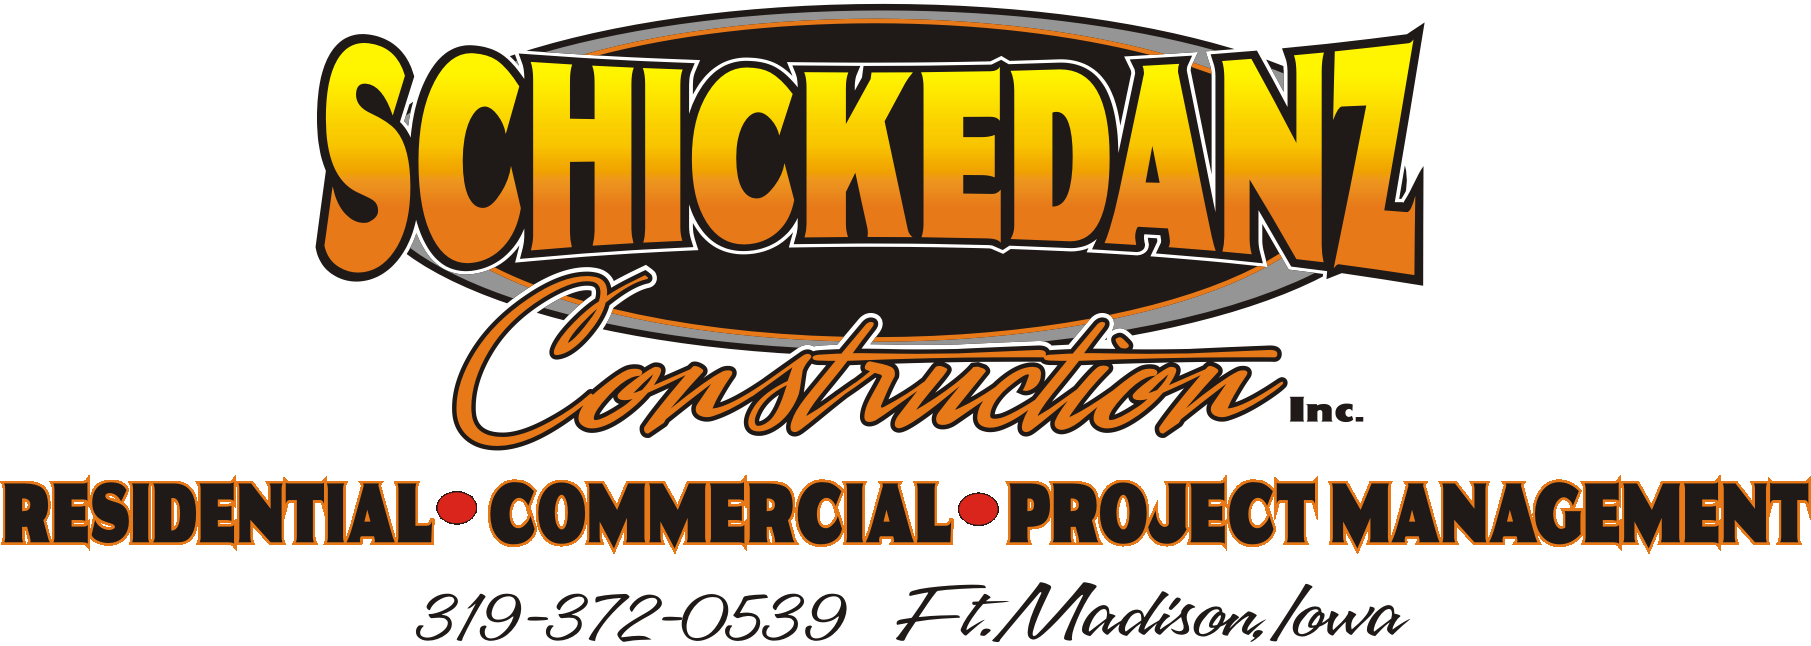 Schickedanz Construction, Inc